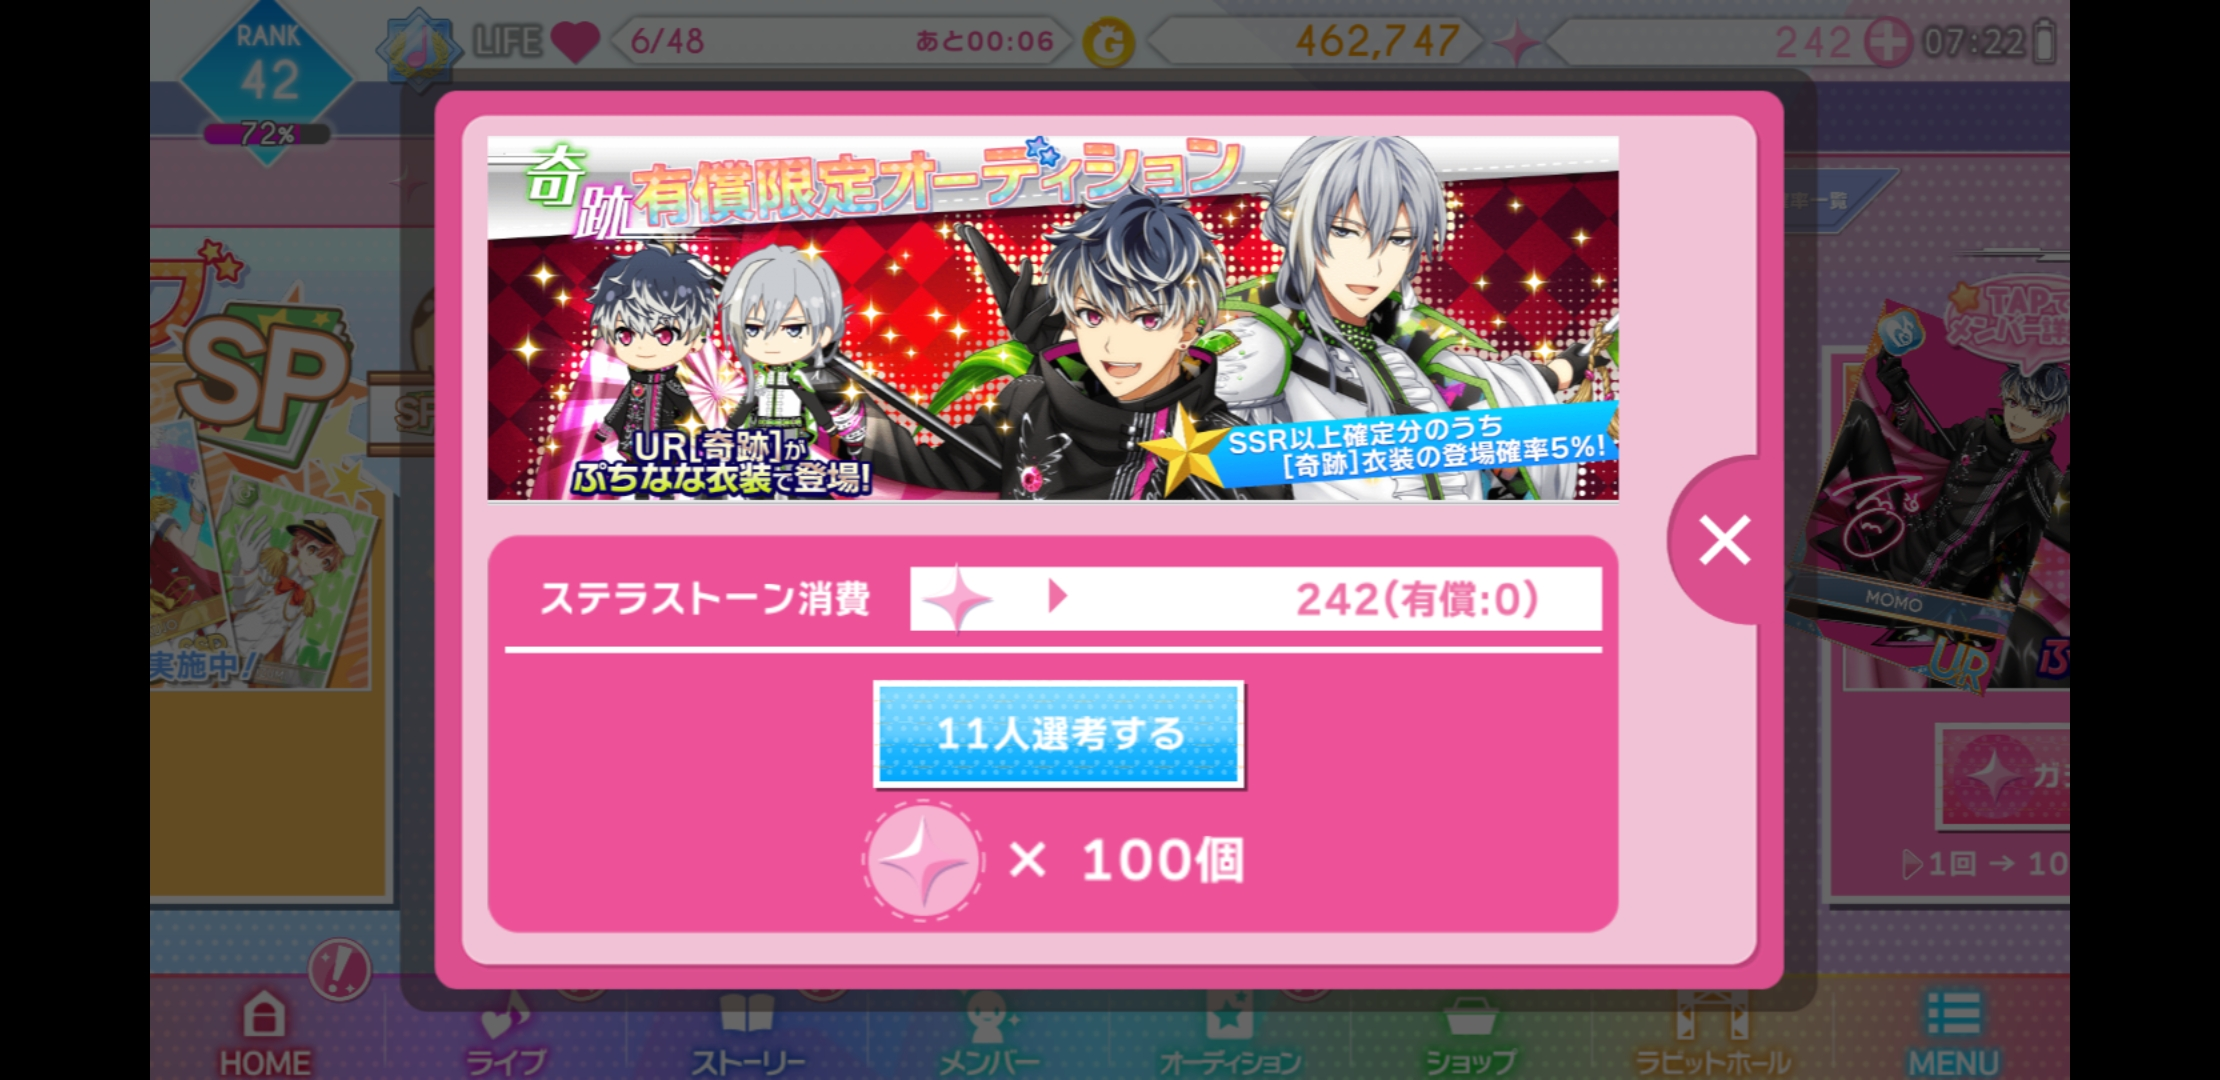 How to buy this gacha??